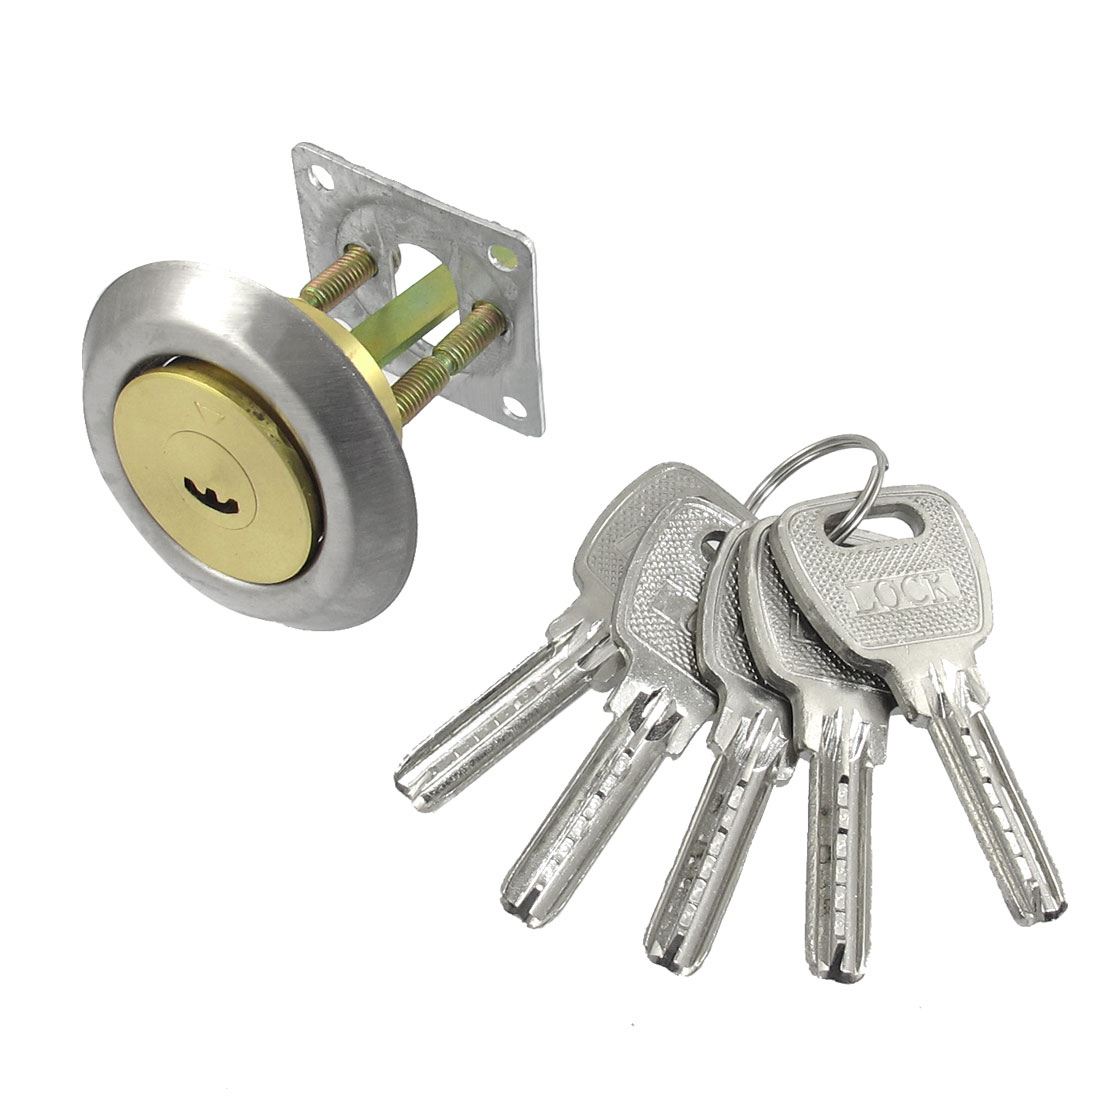 Cabinet Drawer Anti-Theft Deadbolt Cylinder Lock with 5 Keys